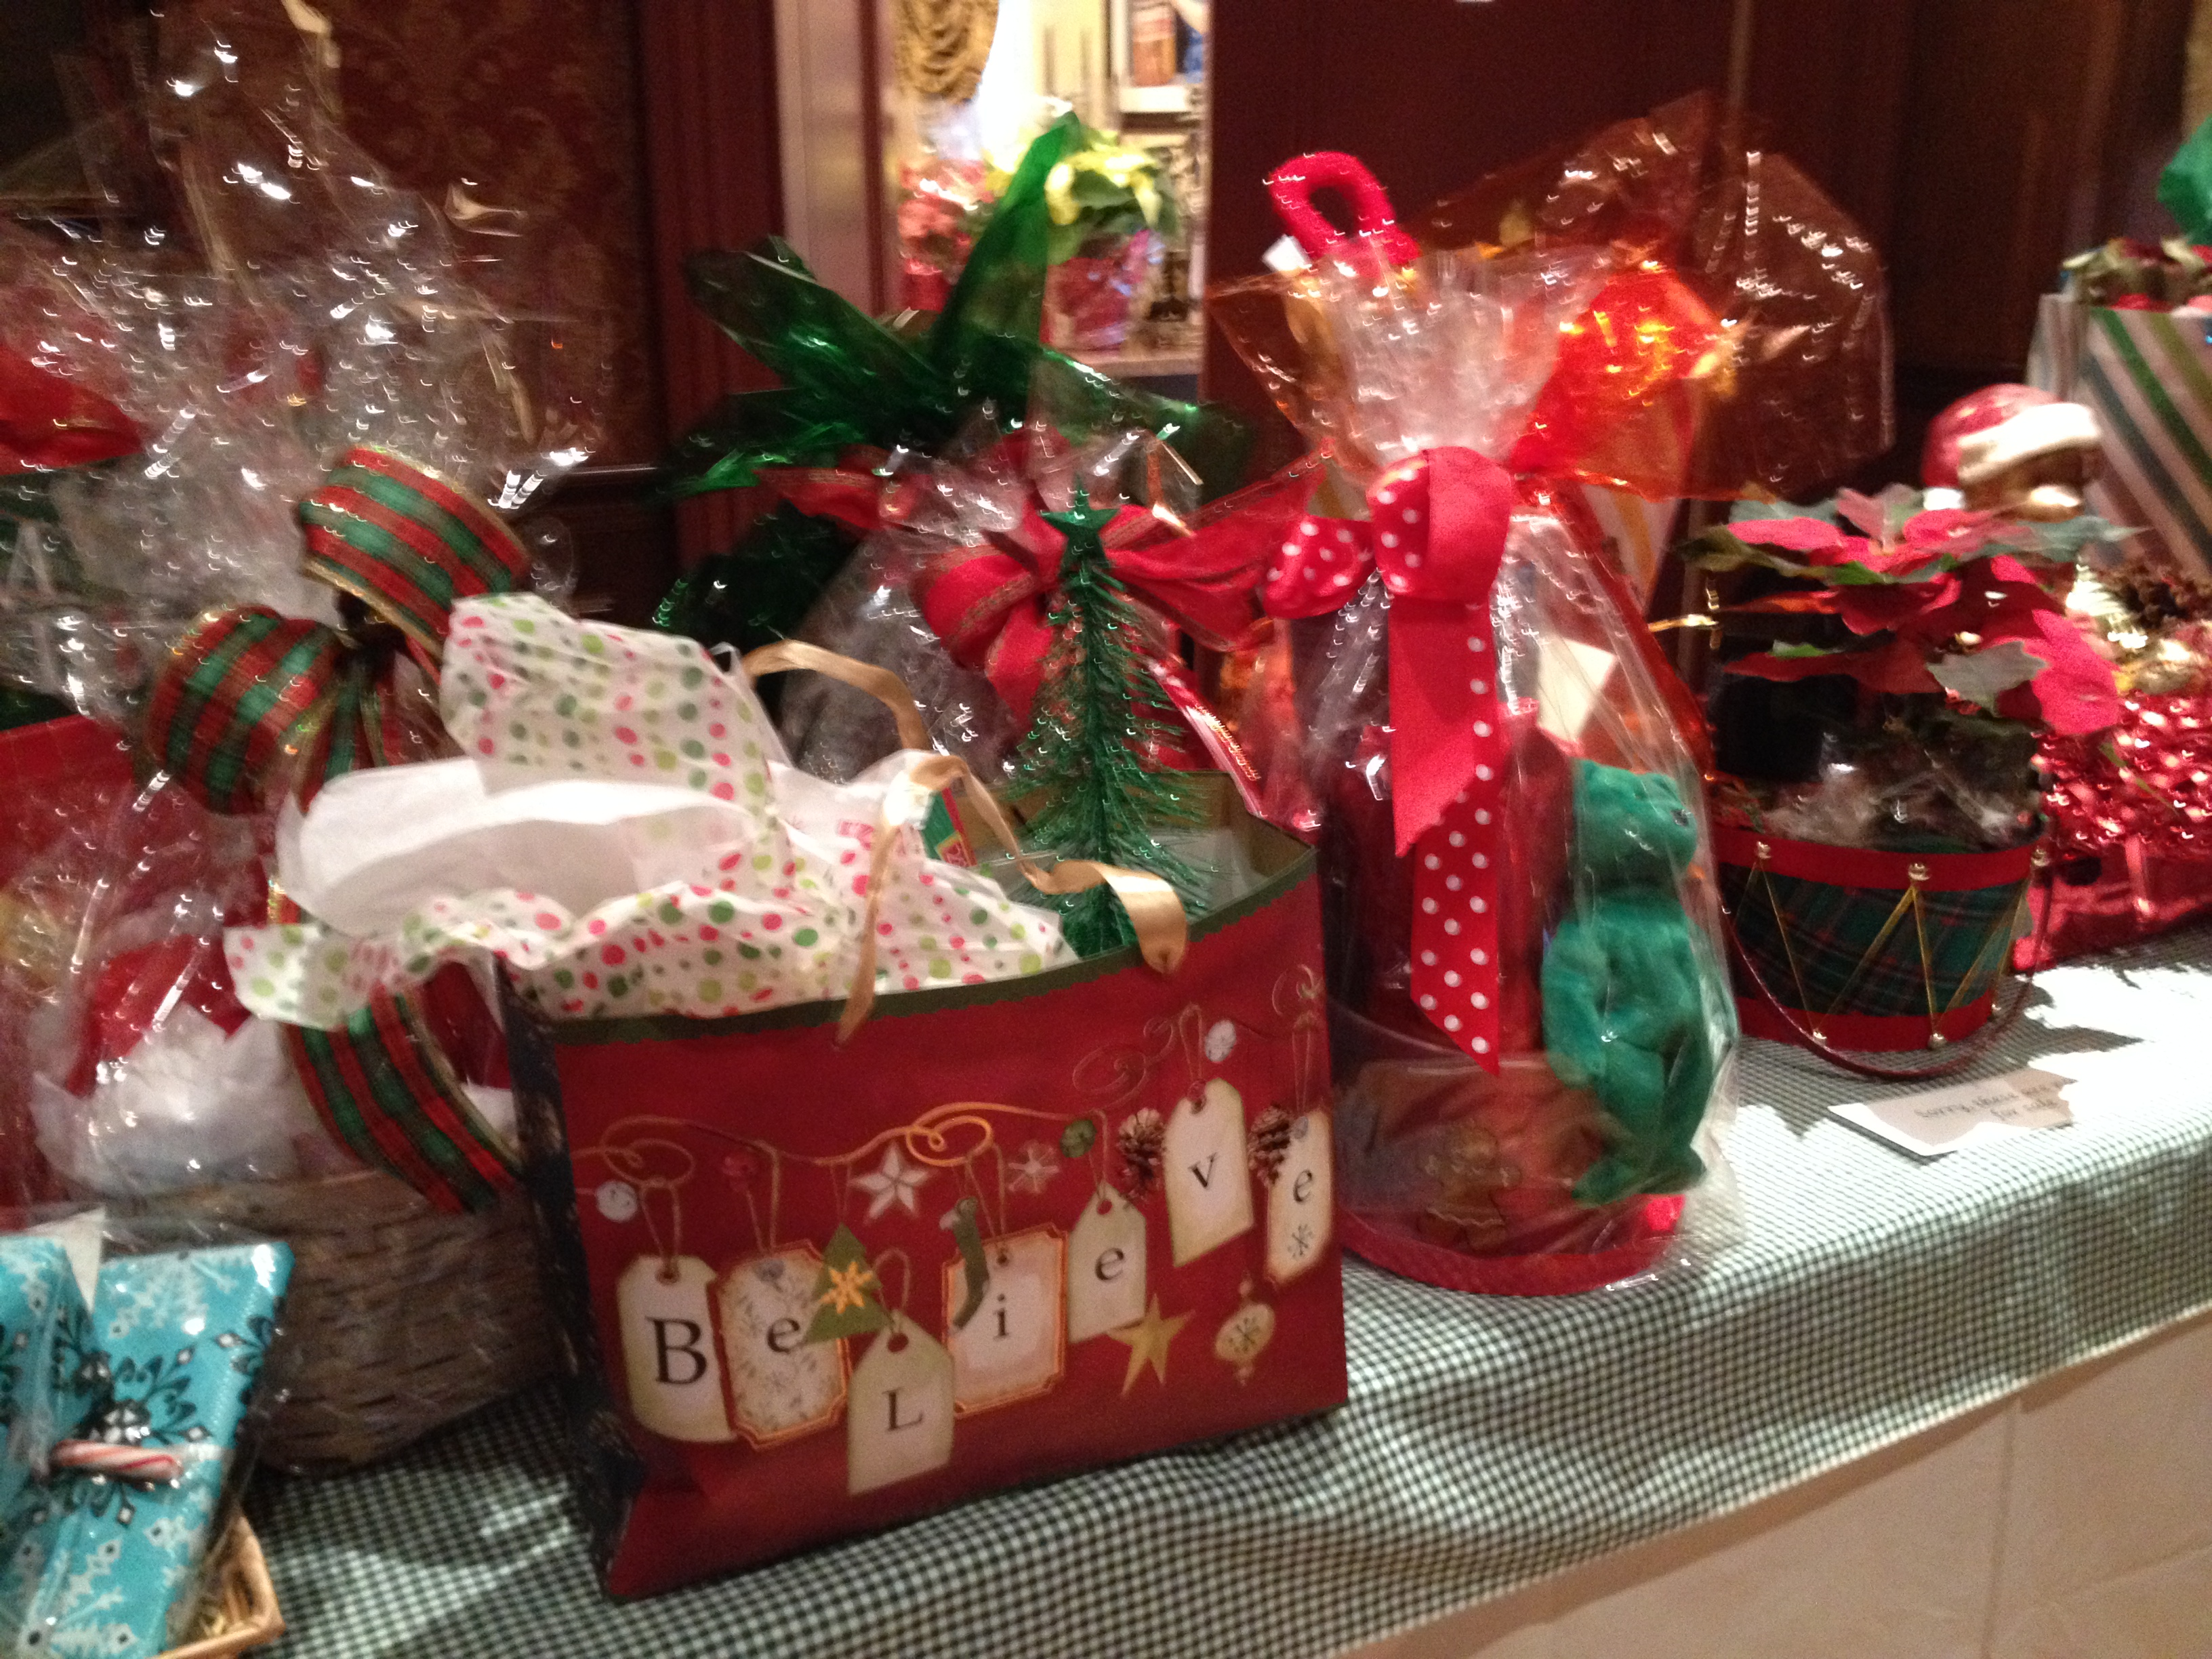 Aging Parents: Gifts That Look Great! | Help! Aging Parents